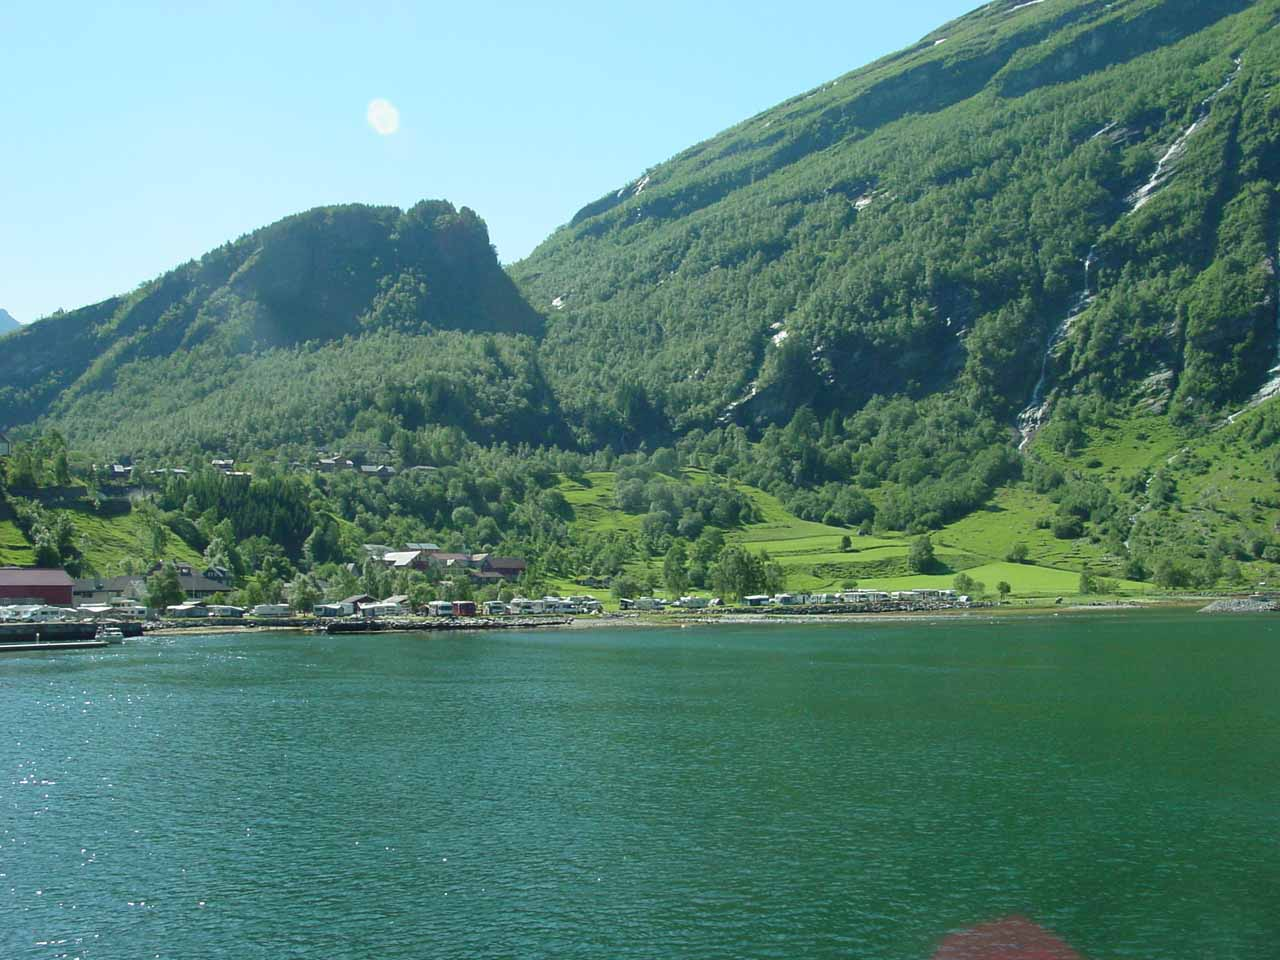 Looking towards the southern side of the fjord just as we left Geiranger on the cruise